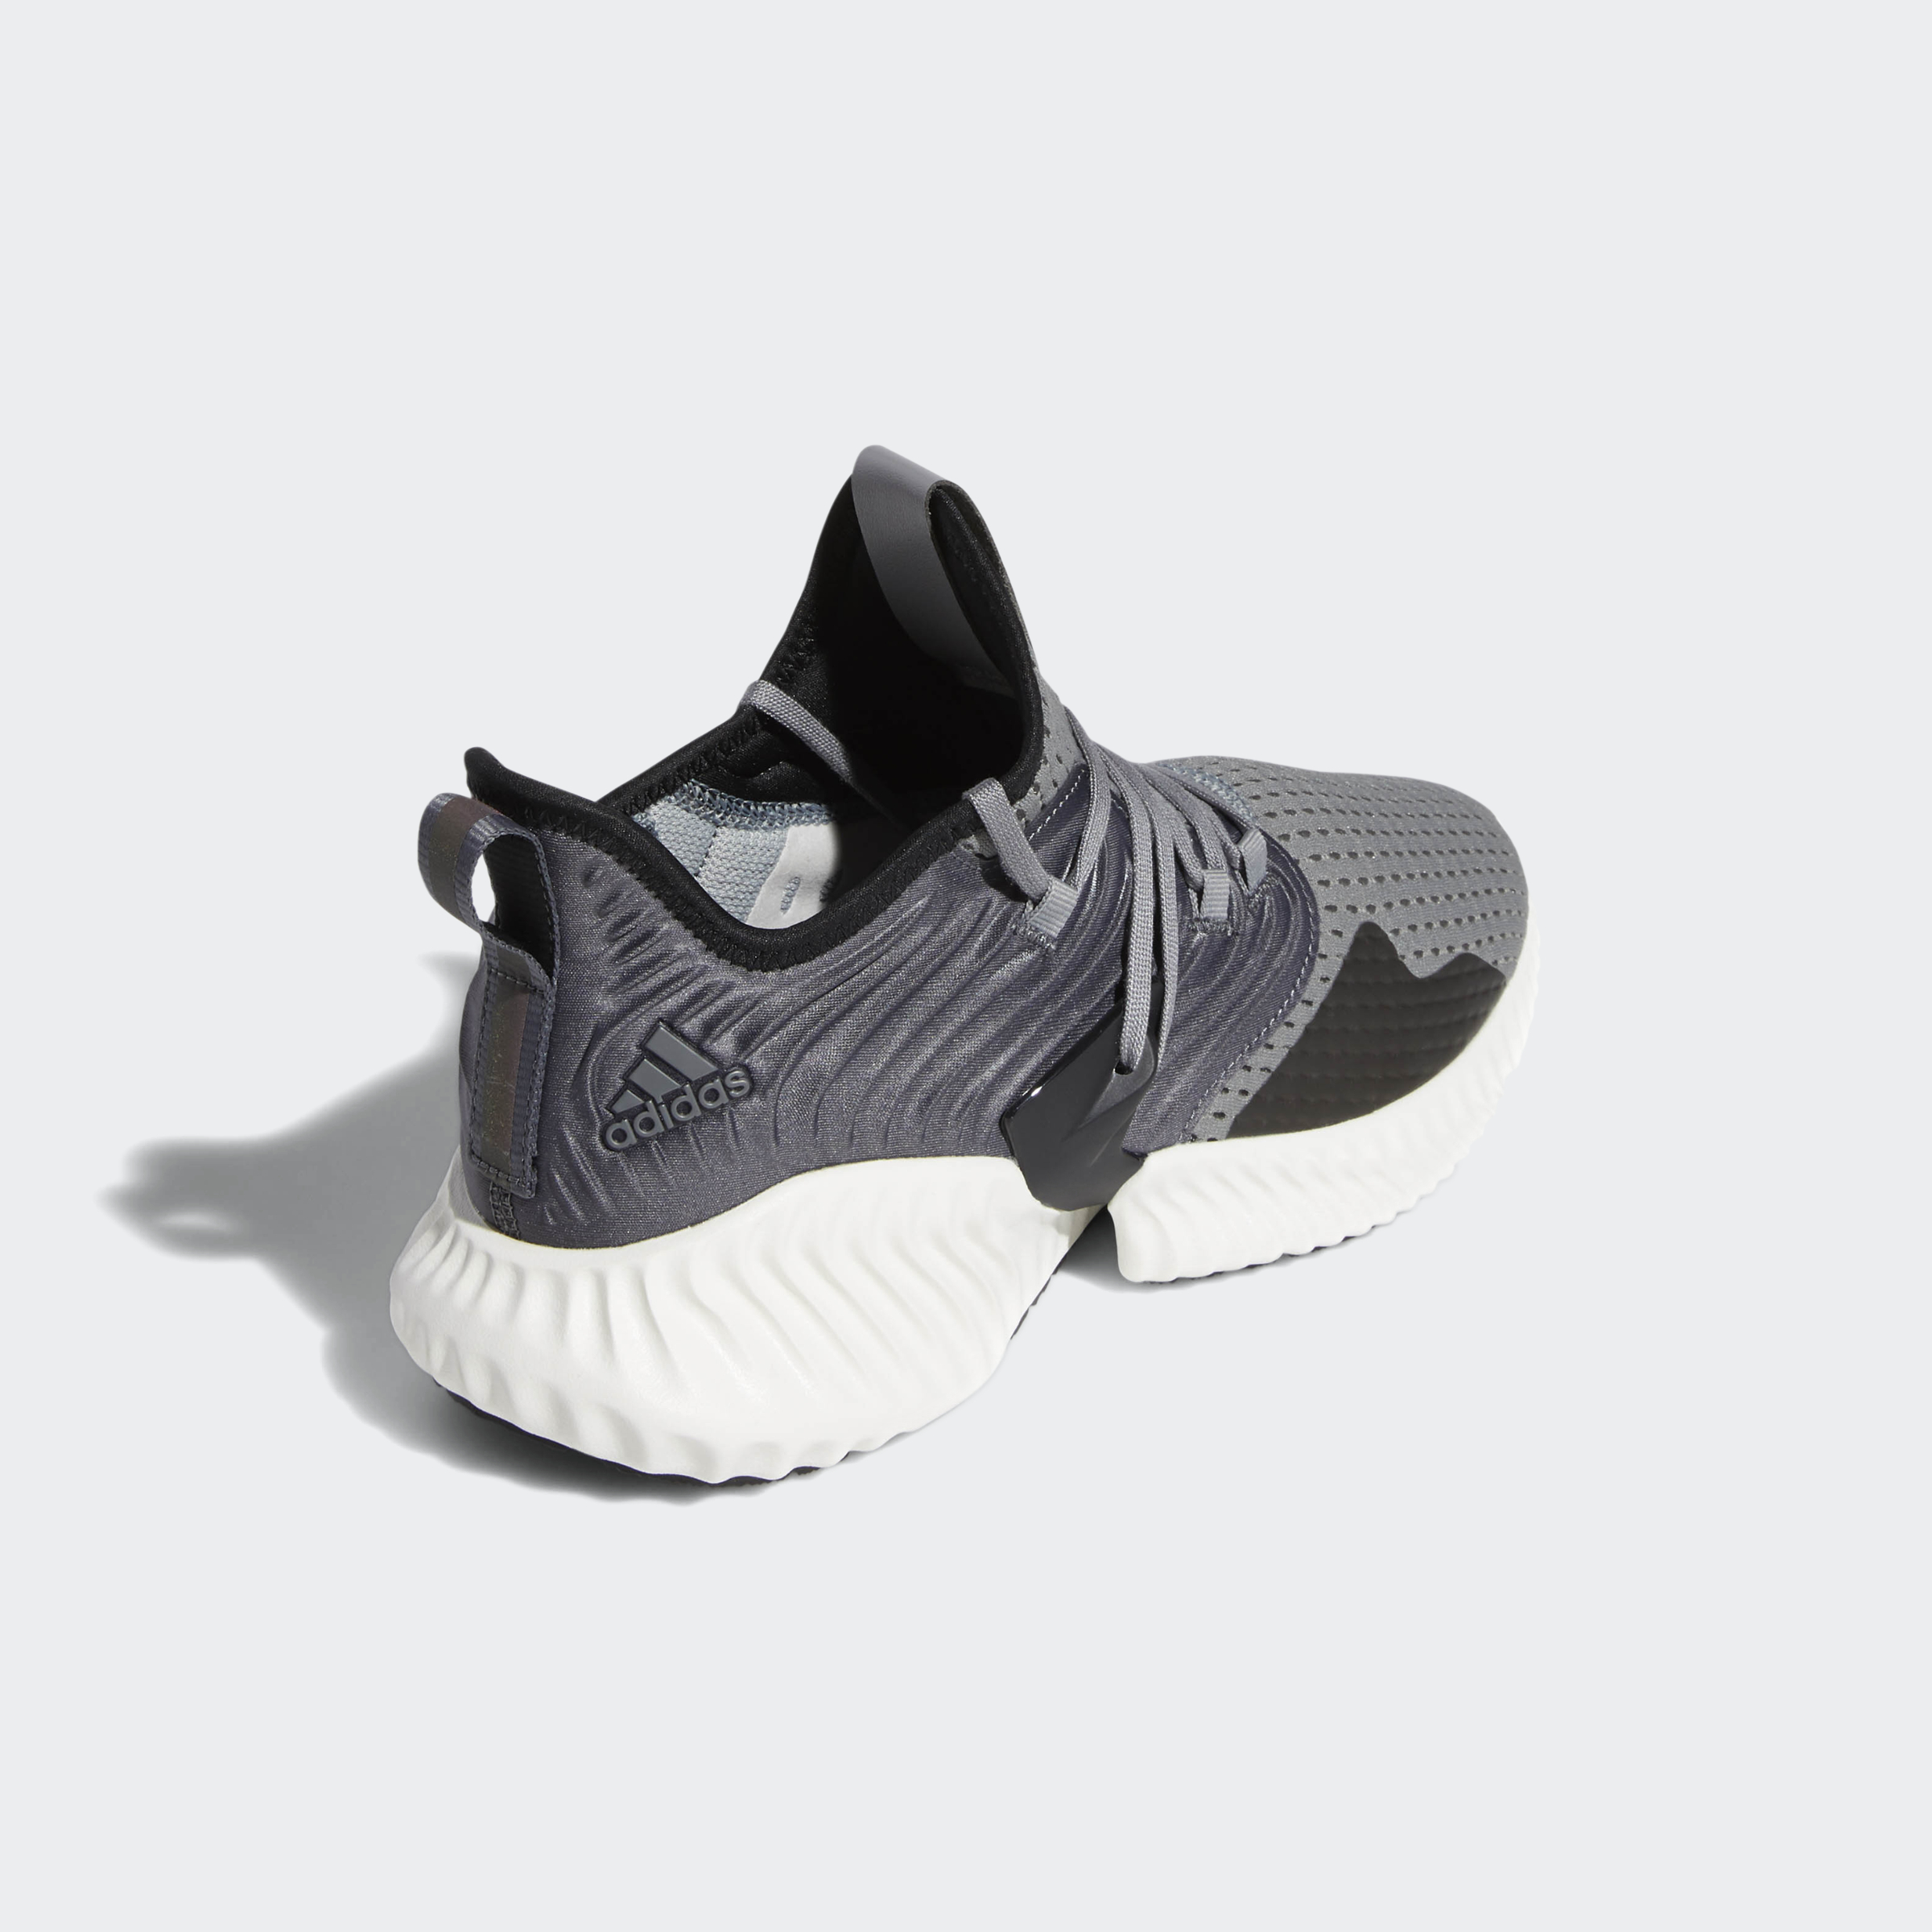 adidas-Alphabounce-Instinct-Clima-Shoes-Men-039-s-Athletic-amp-Sneakers miniature 14